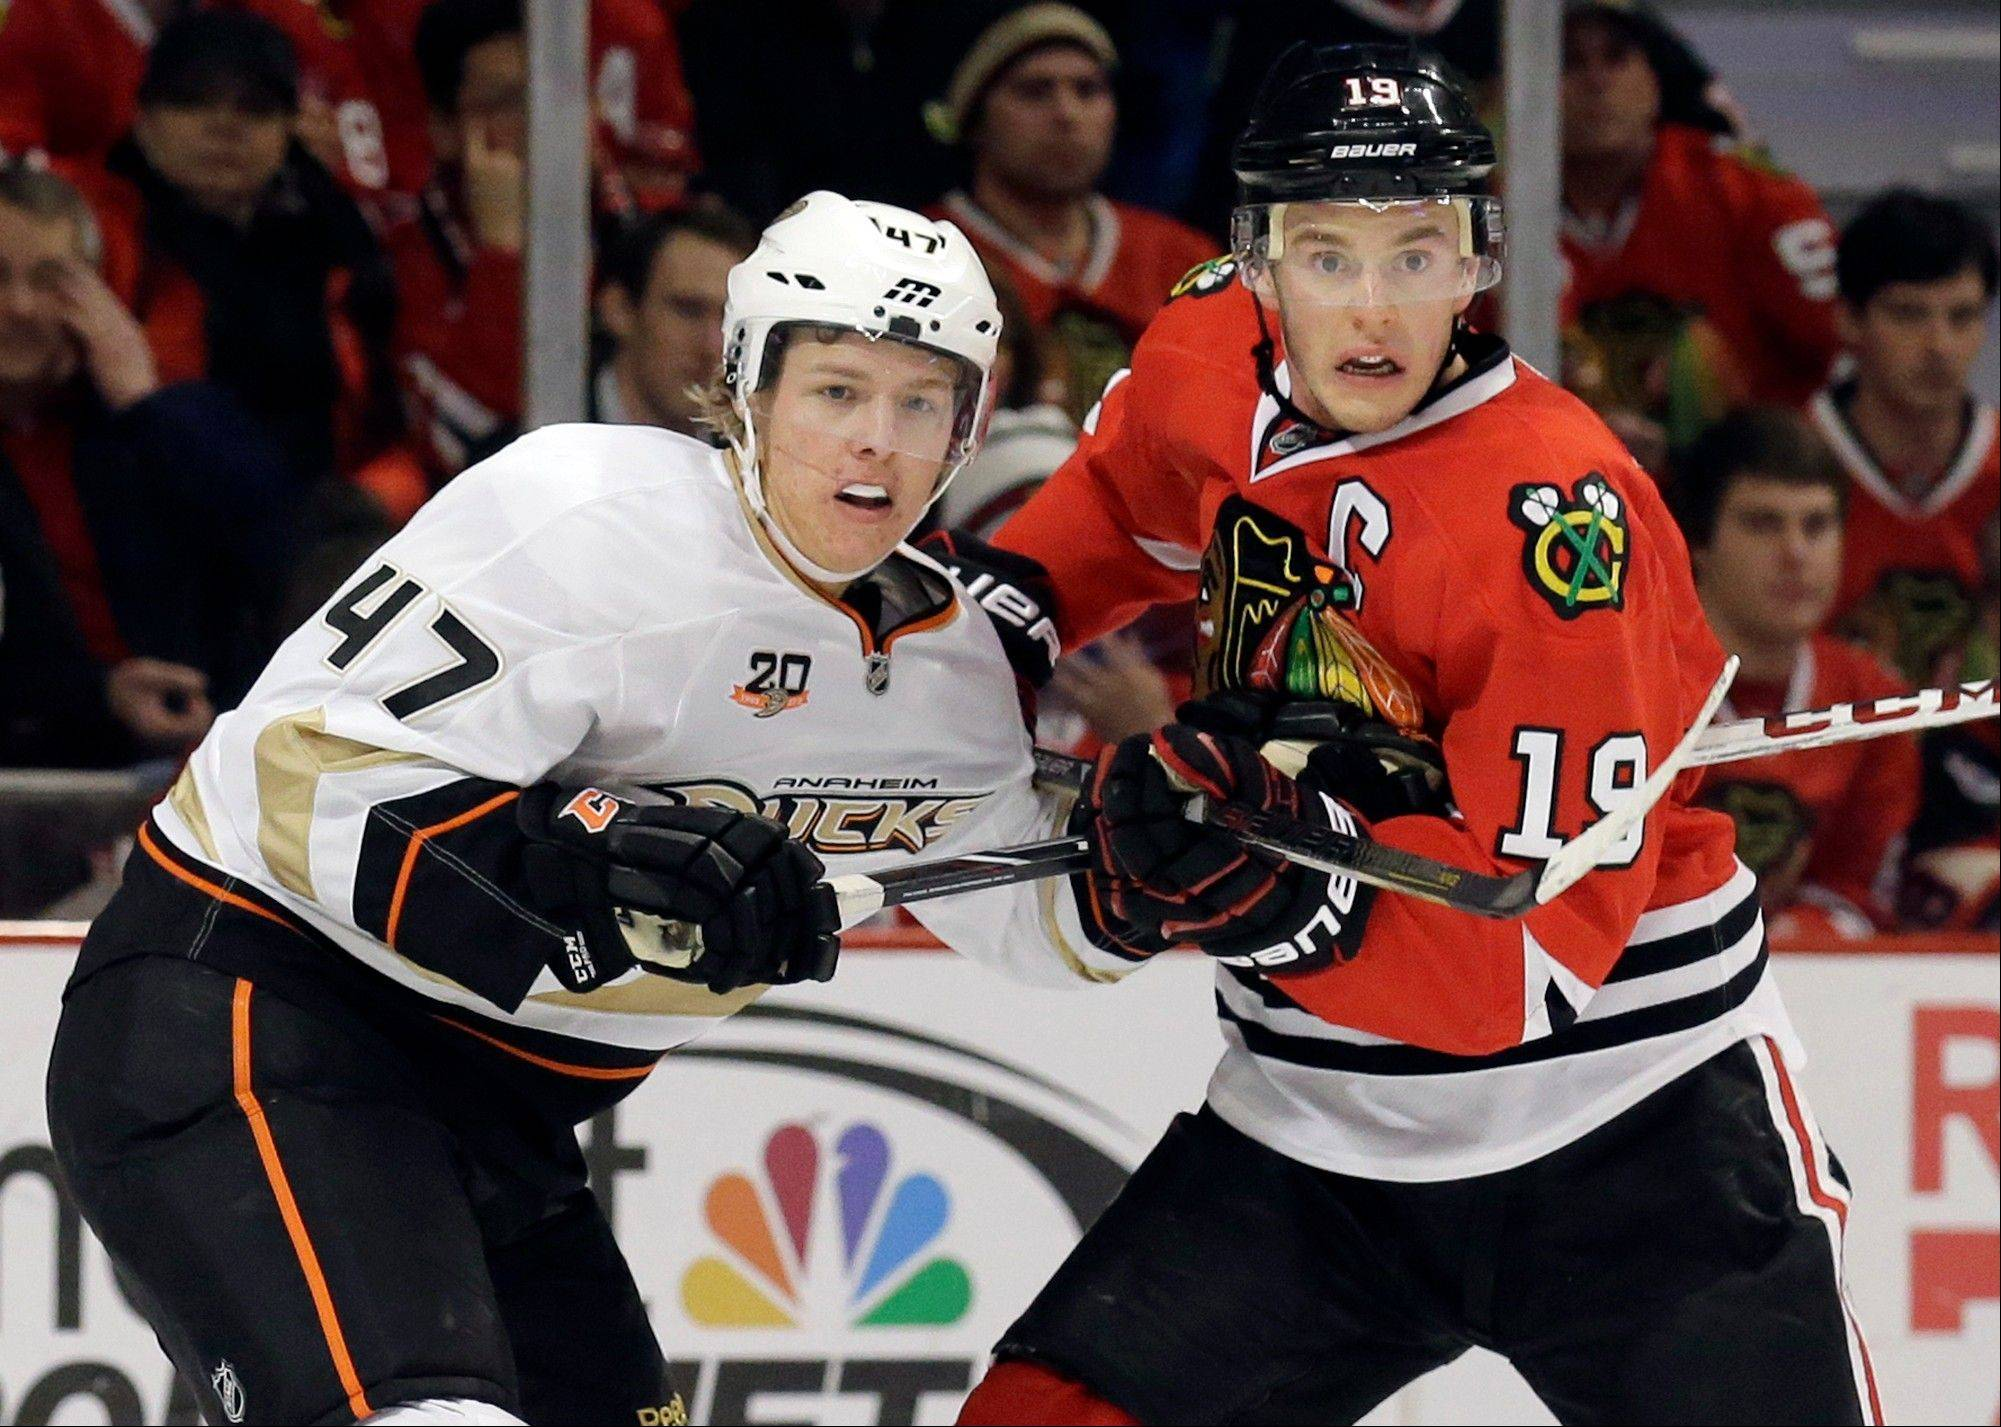 Chicago Blackhawks' Jonathan Toews, right, and Anaheim Ducks' Hampus Lindholm watch the puck during the second period of an NHL hockey game in Chicago, Friday, Jan. 17, 2014.